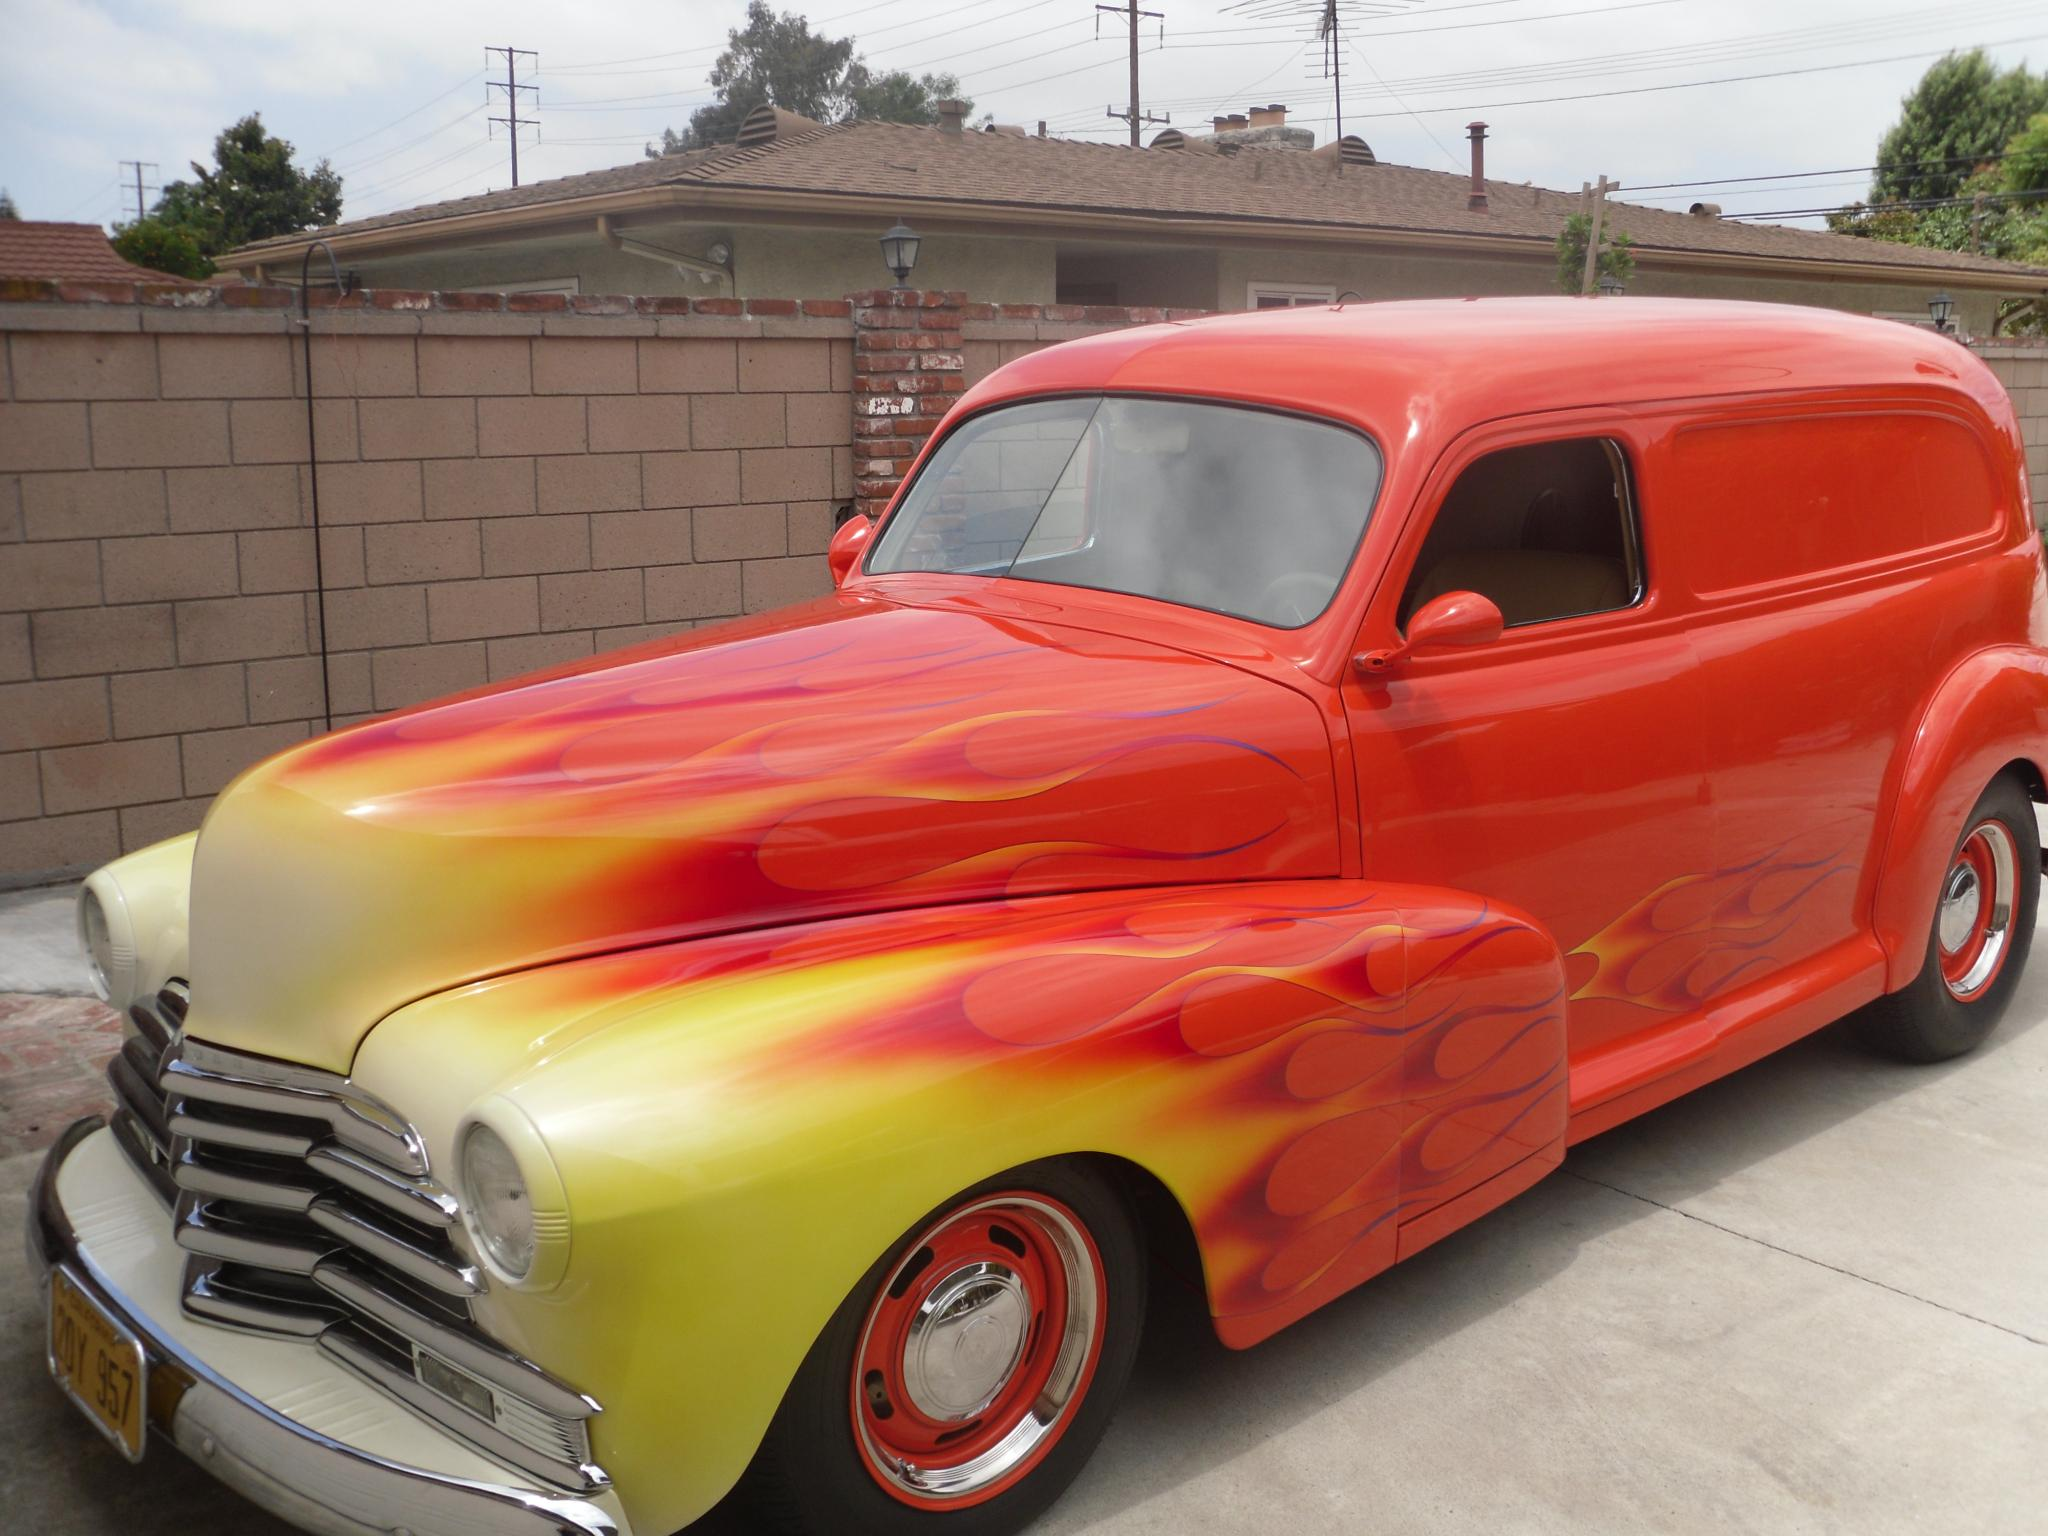 1948 Chevrolet Sedan Delivery All-Steel for sale in ANAHEIM, CA - $44,500